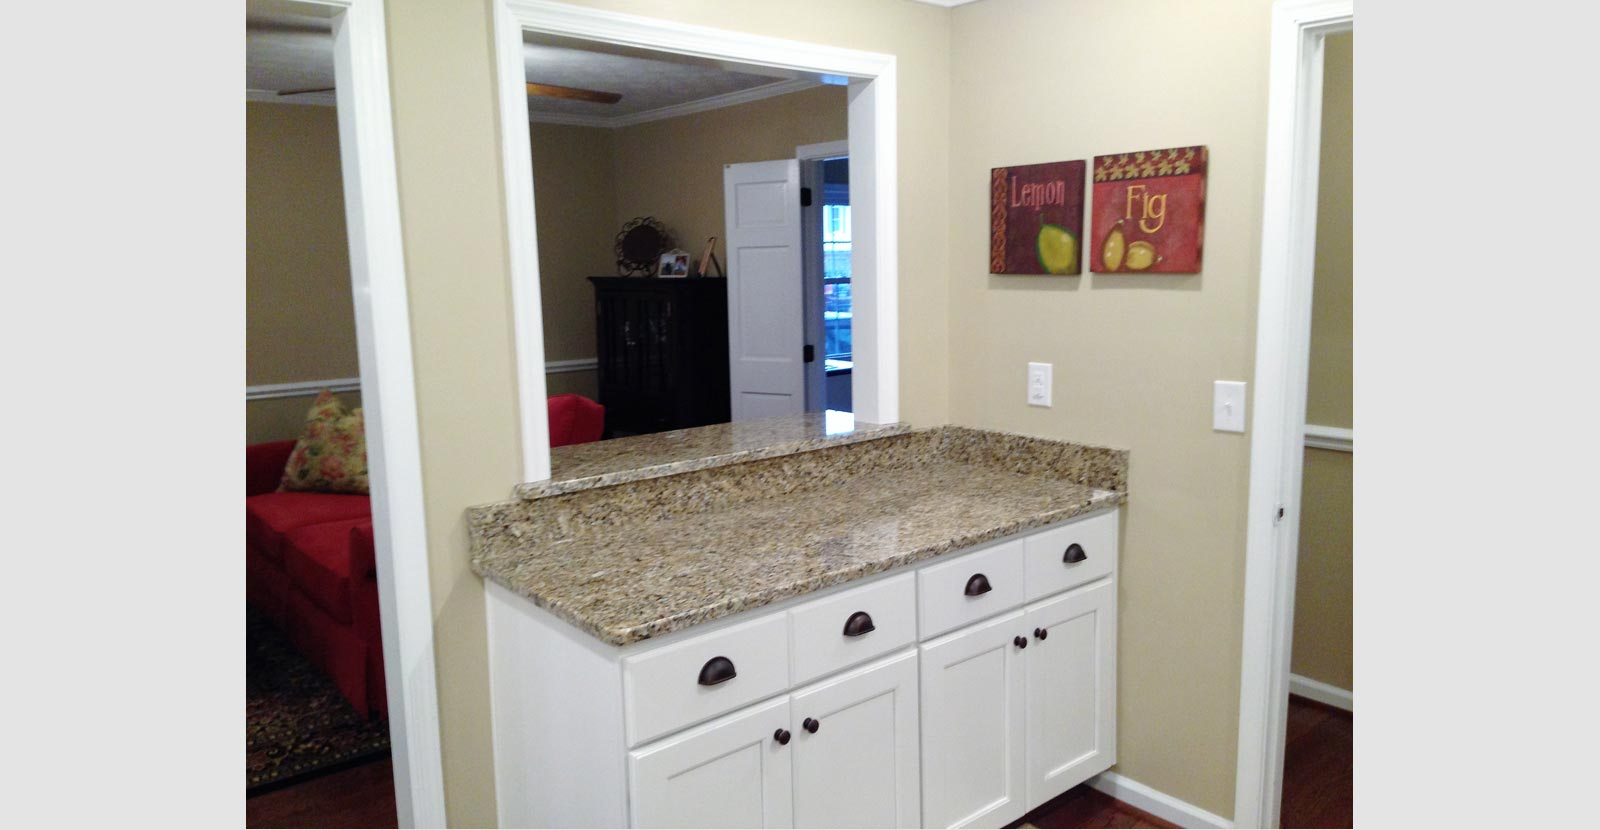 Bathroom Remodeling Hampton Roads Va hampton roads full home remodeling services | hatchett contractors